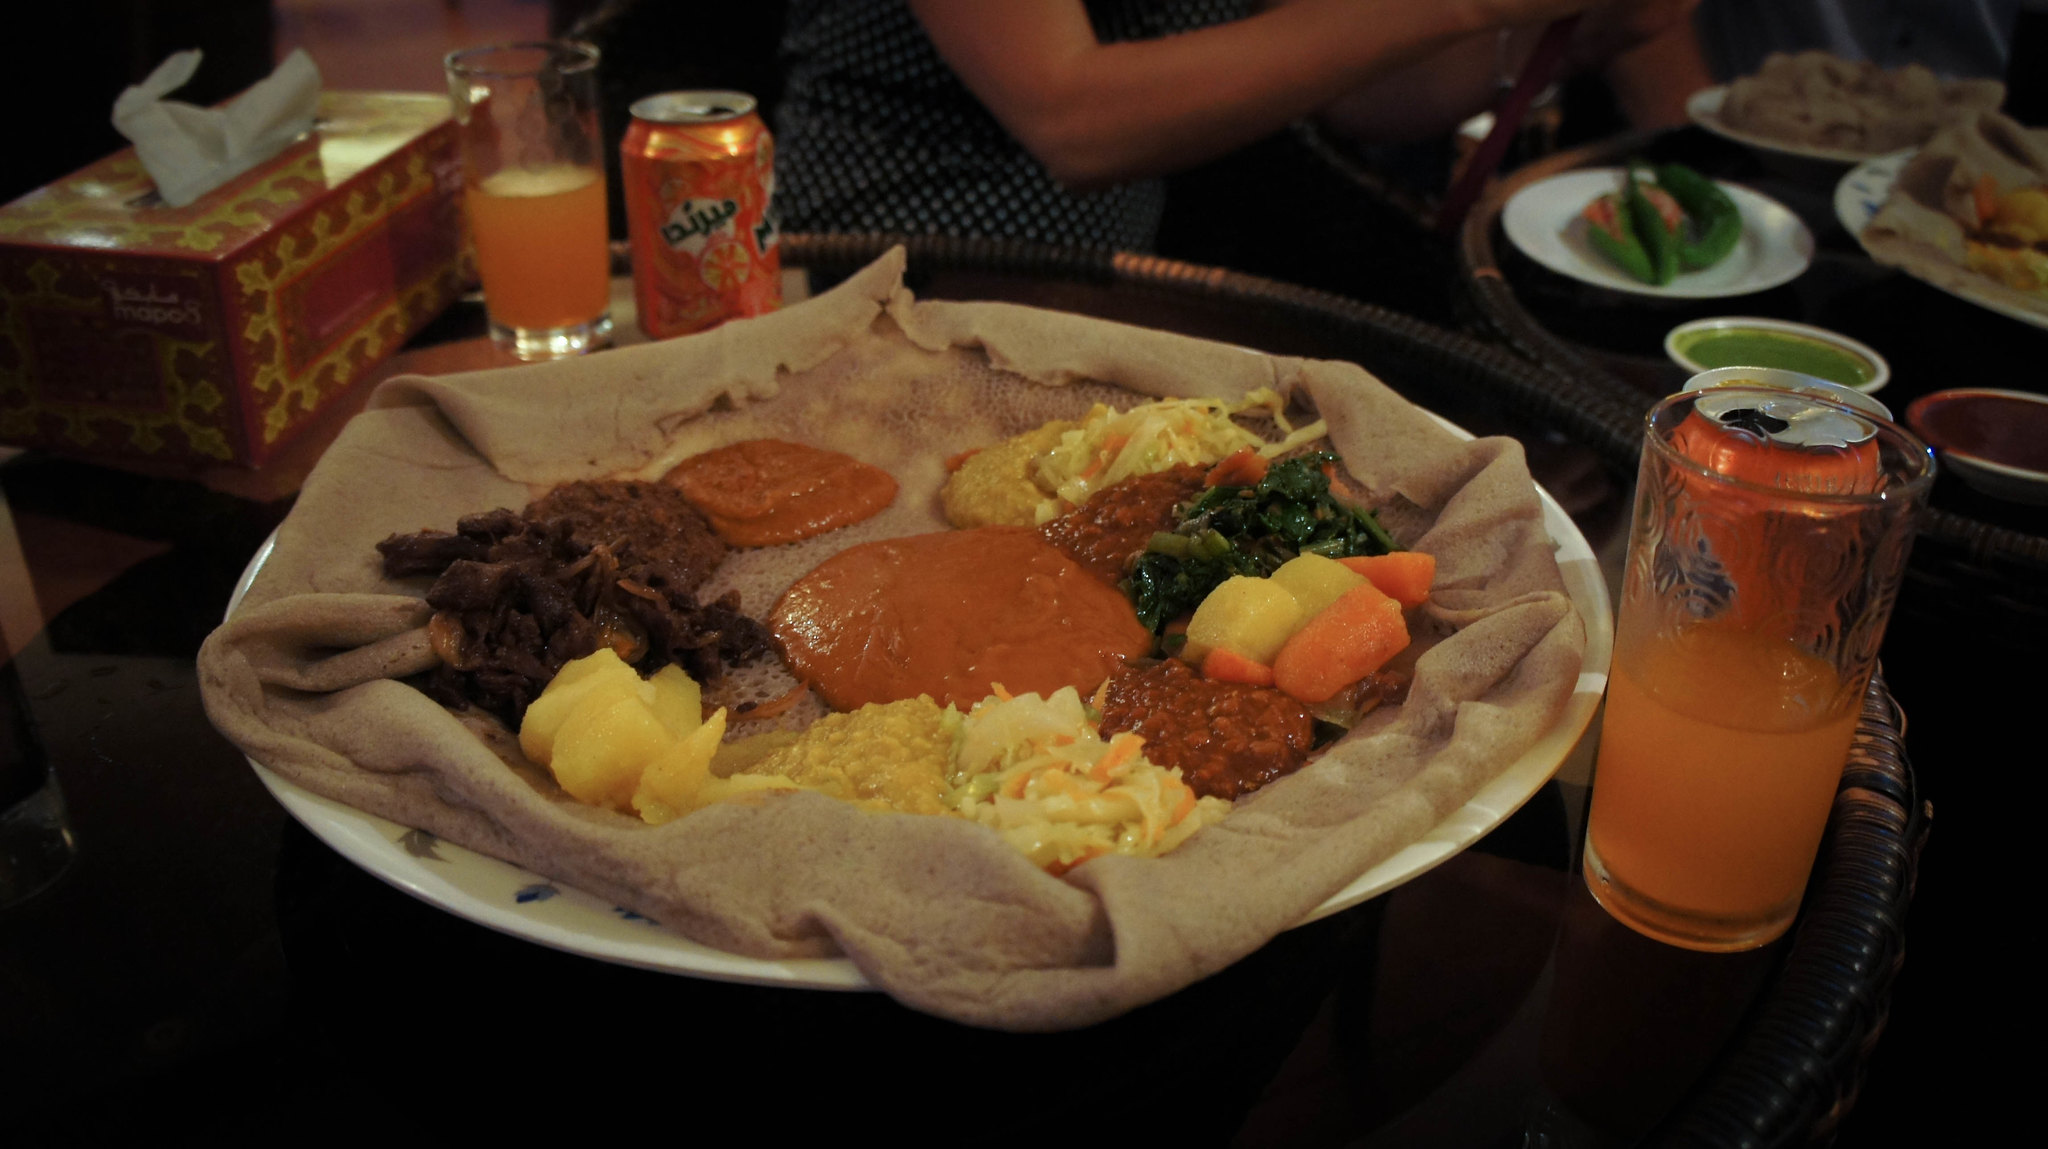 Sites for further exploration: local restaurants (pictured here, Eritrean food!!)